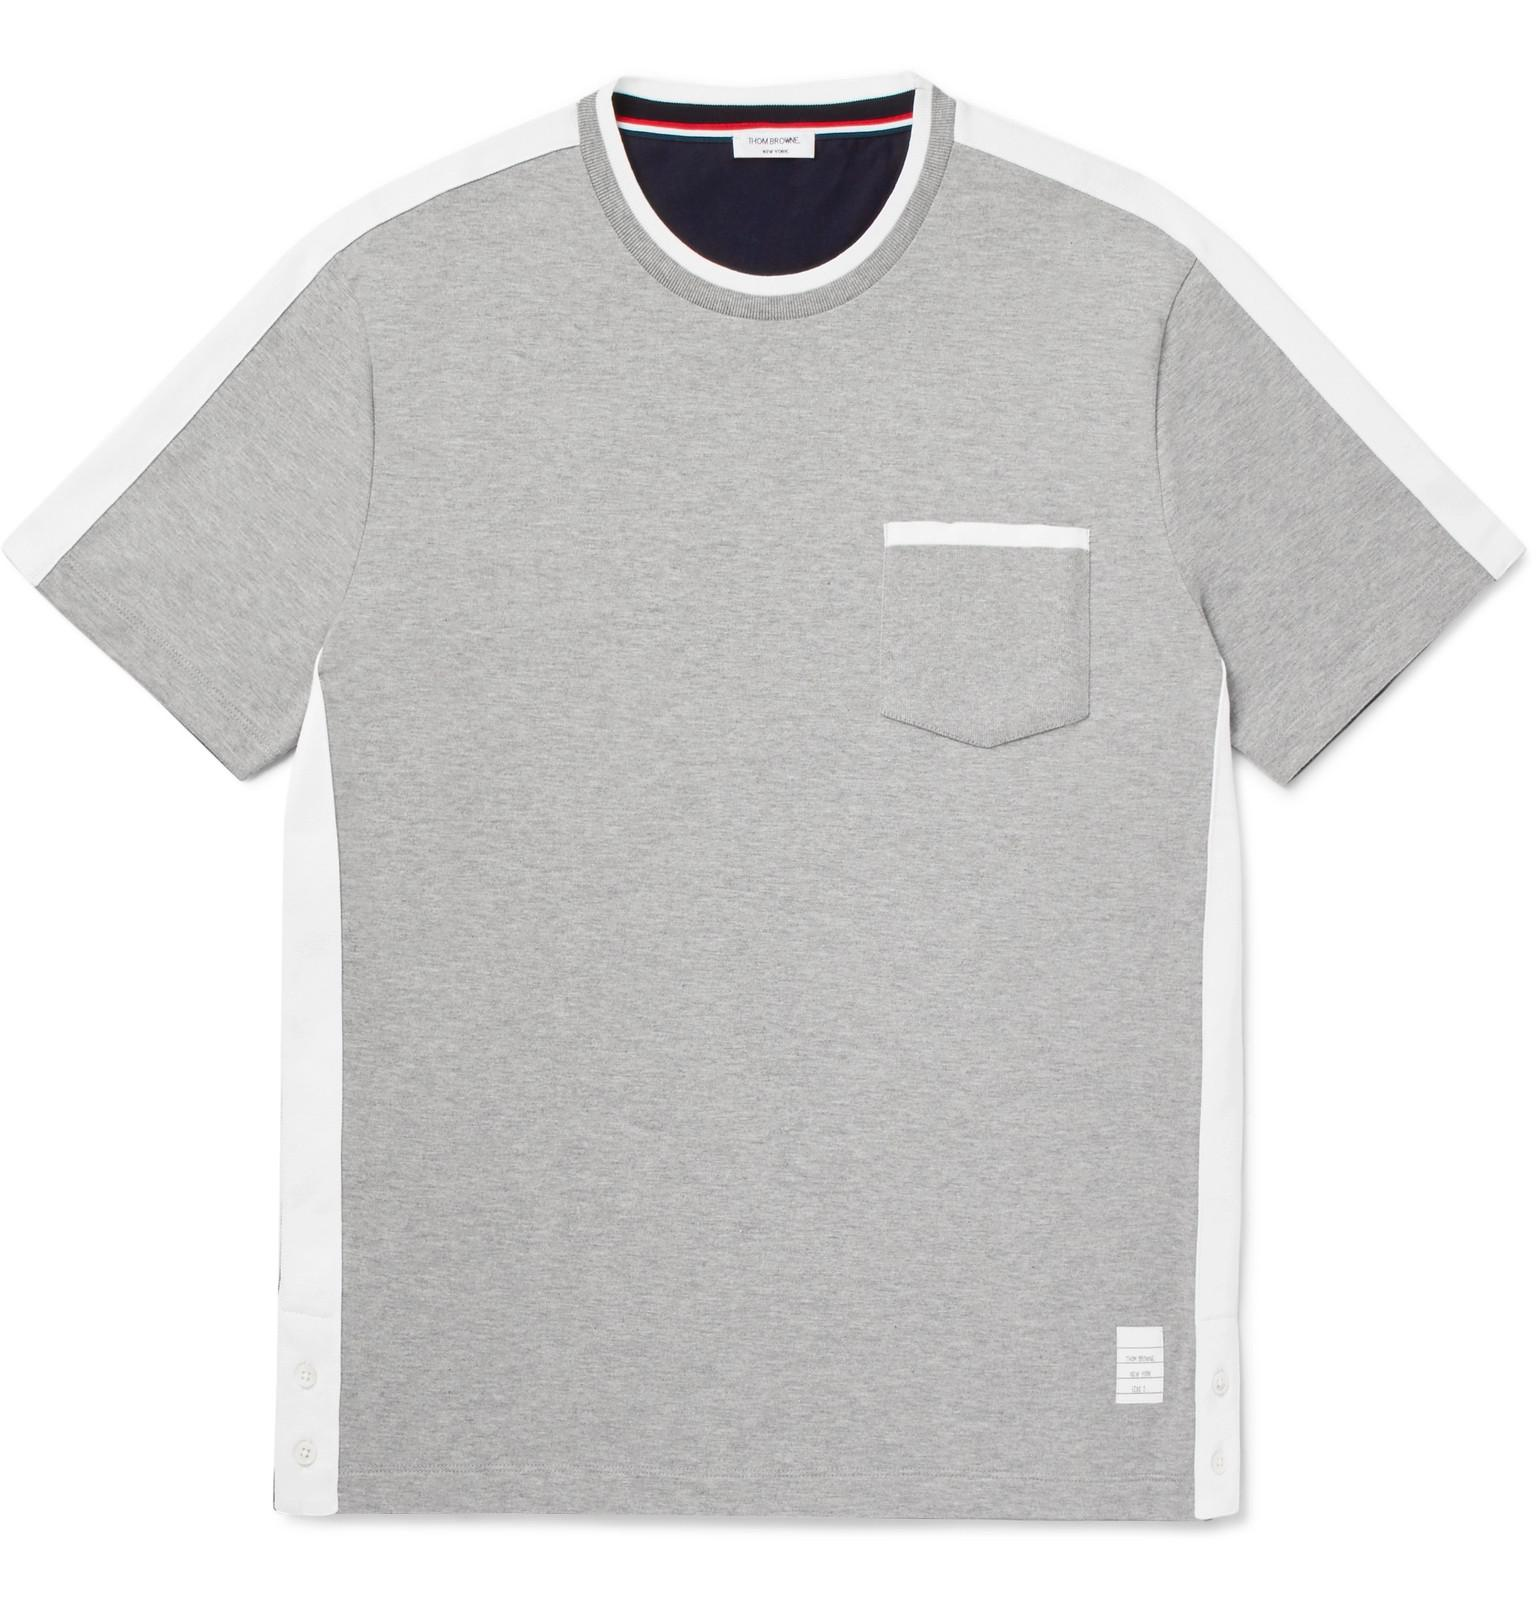 081e9464613 Thom Browne Colour-block Webbing-trimmed Cotton-jersey T-shirt in ...